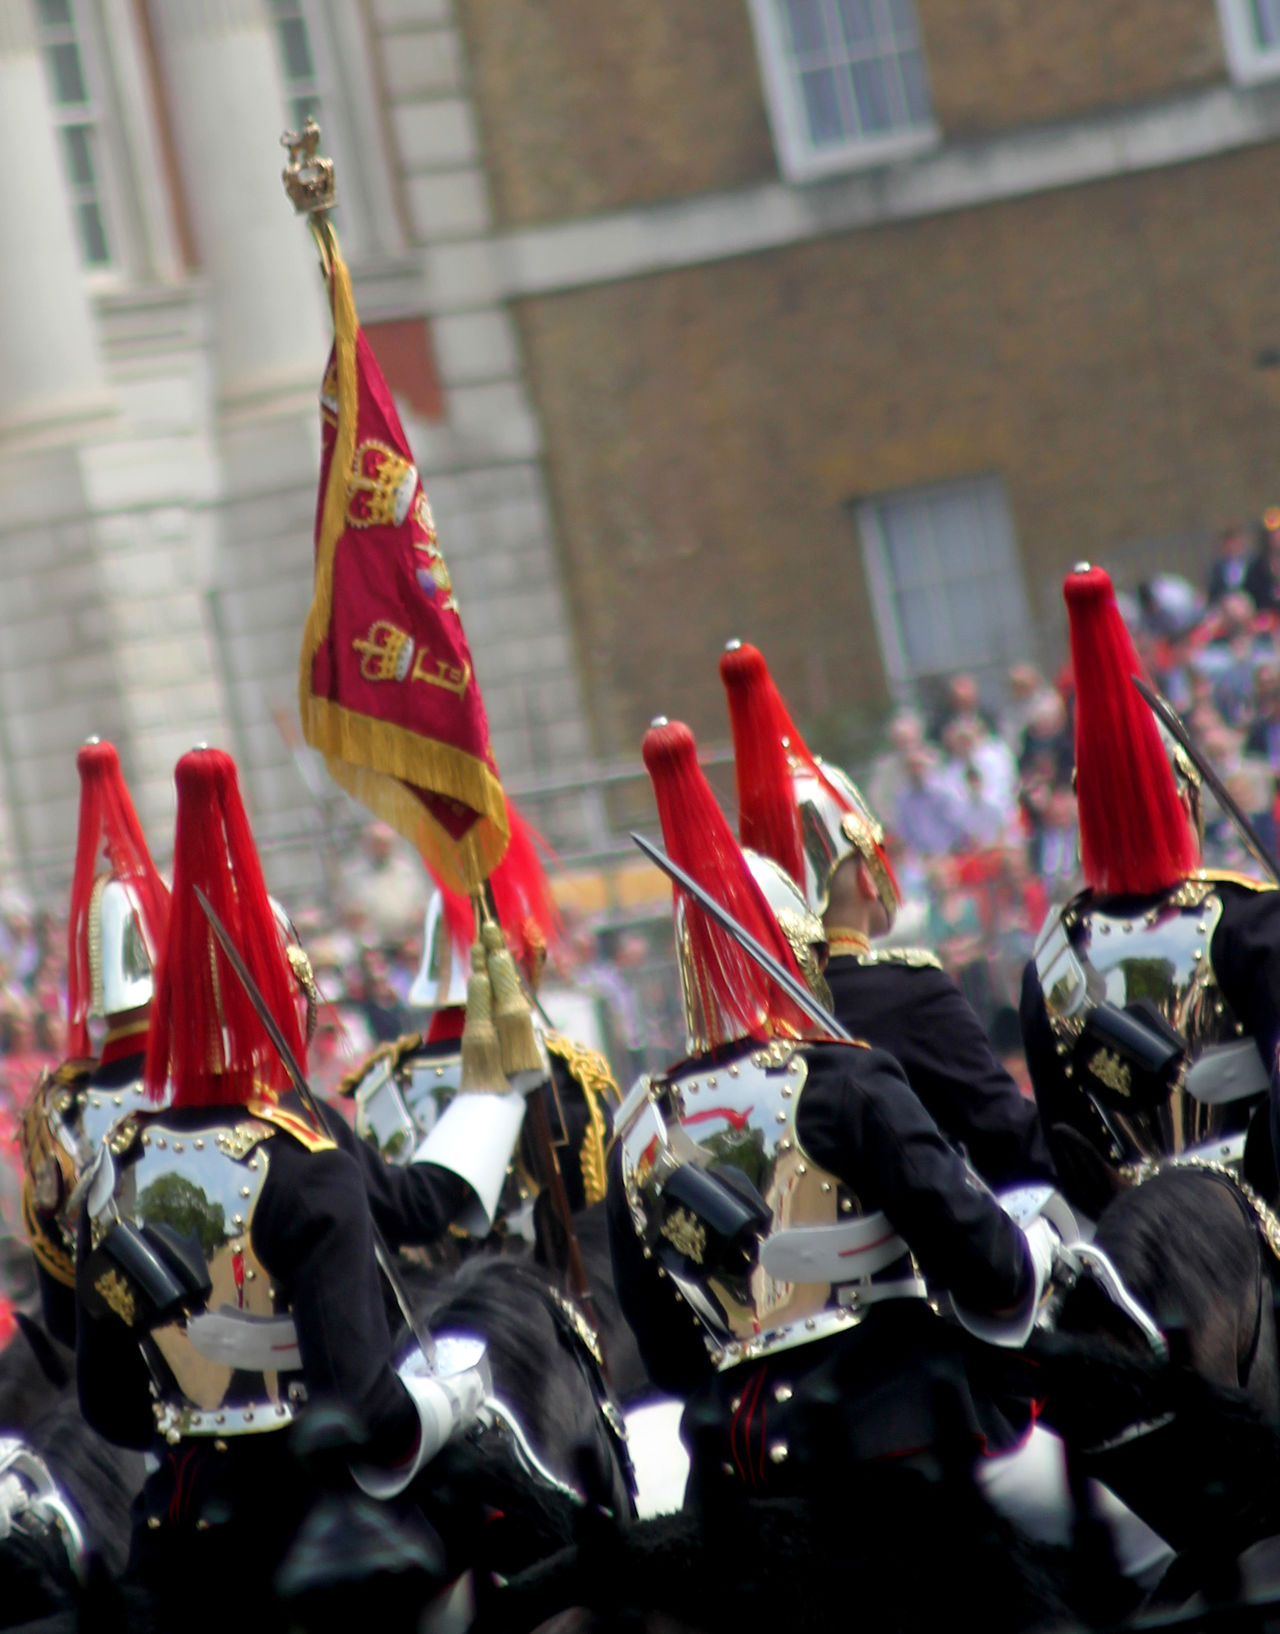 Trooping of The Colour London England Architecture Building Exterior Built Structure Cavalry Close-up Day England Flag Horseguards Hourseguards Pa Household Cavalry London No People Outdoors Patriotism Red Spirituality Tourism Trooping Of The Colou Trooping The Colour